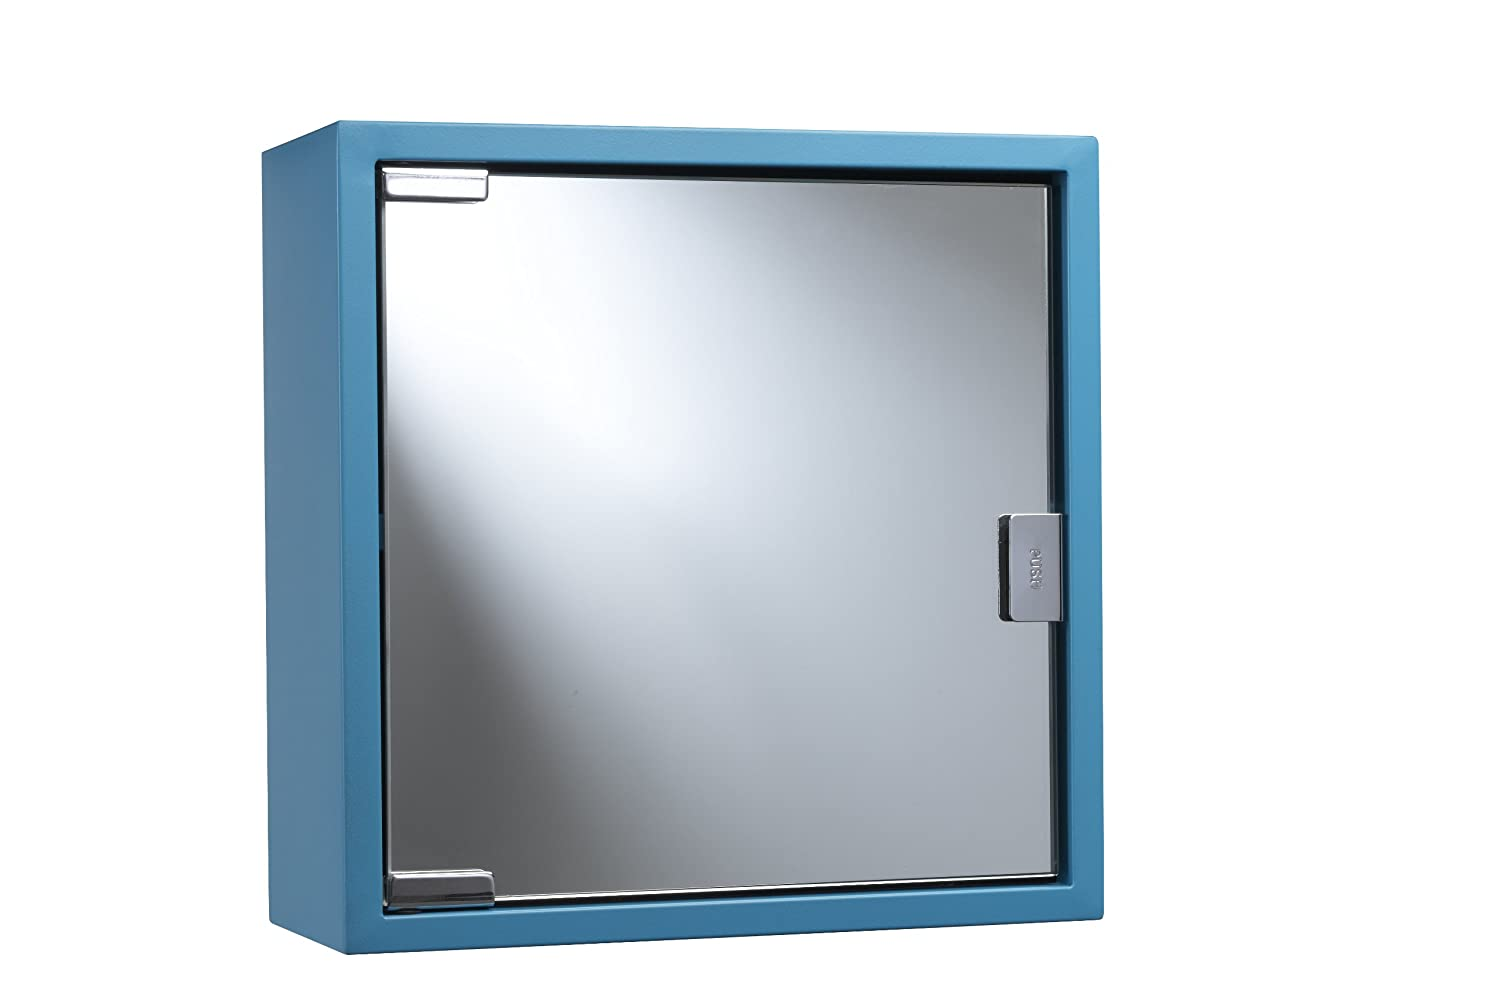 Croydex Single Door Steel Cabinet, Blue: Amazon.co.uk: Kitchen & Home